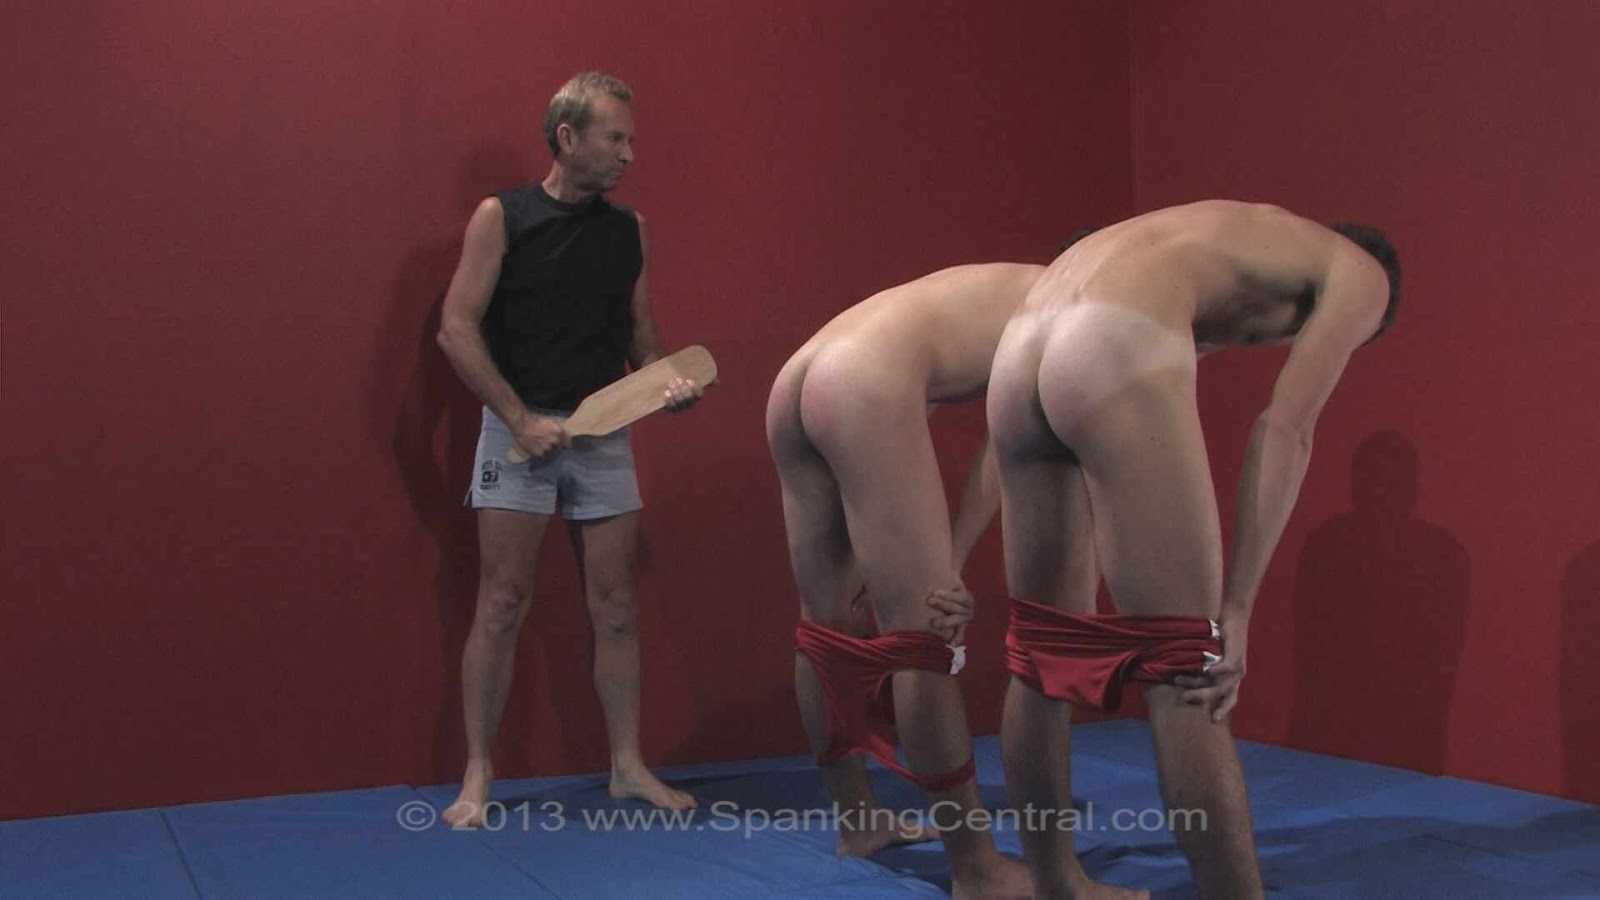 Spanking and wrestling with the rules